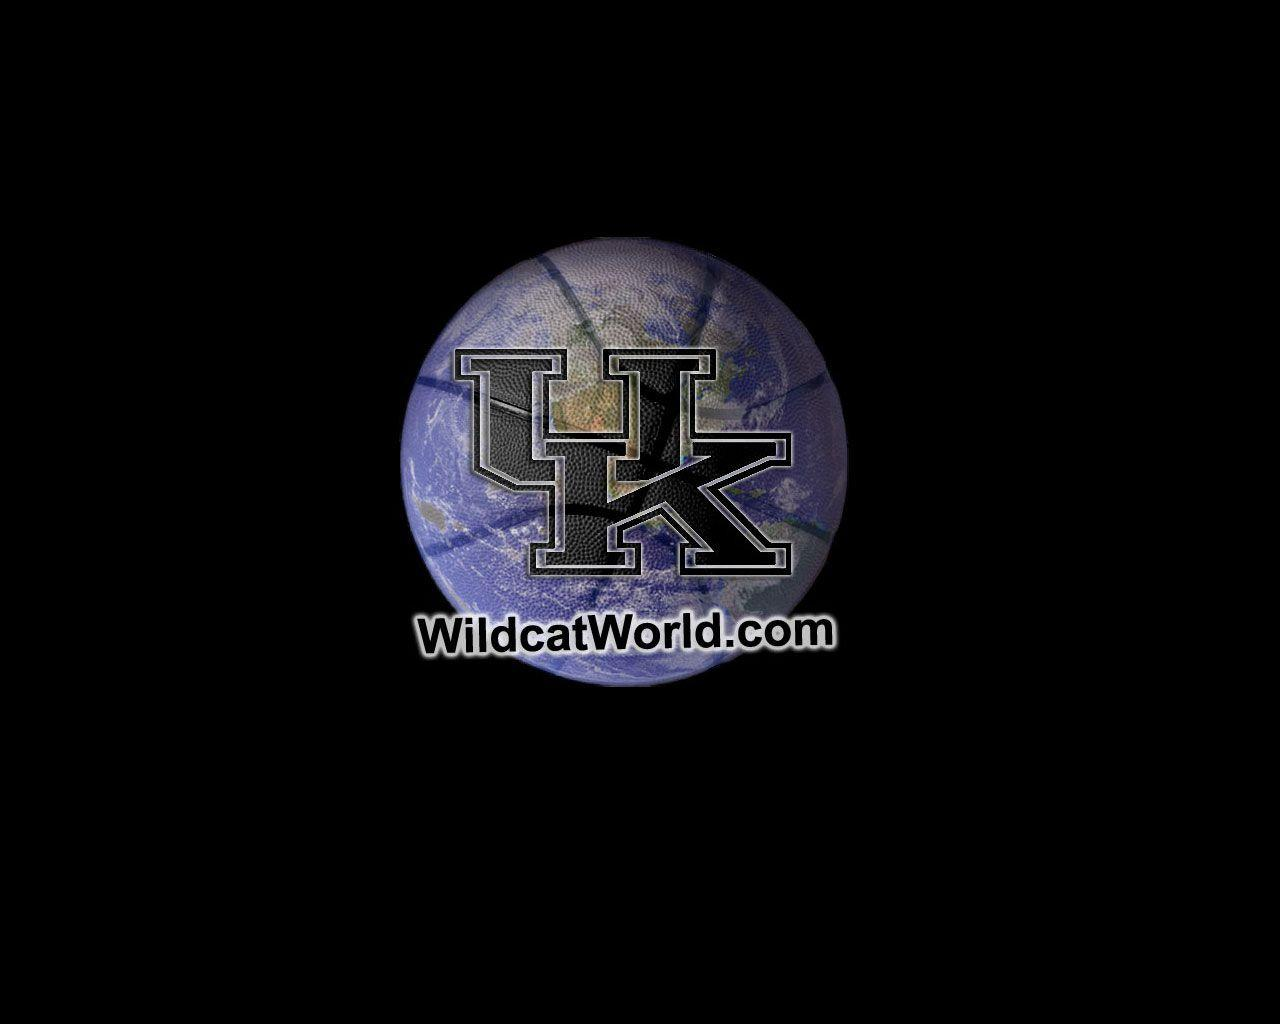 Uk Basketball: Kentucky Wildcats Men's Basketball Wallpapers